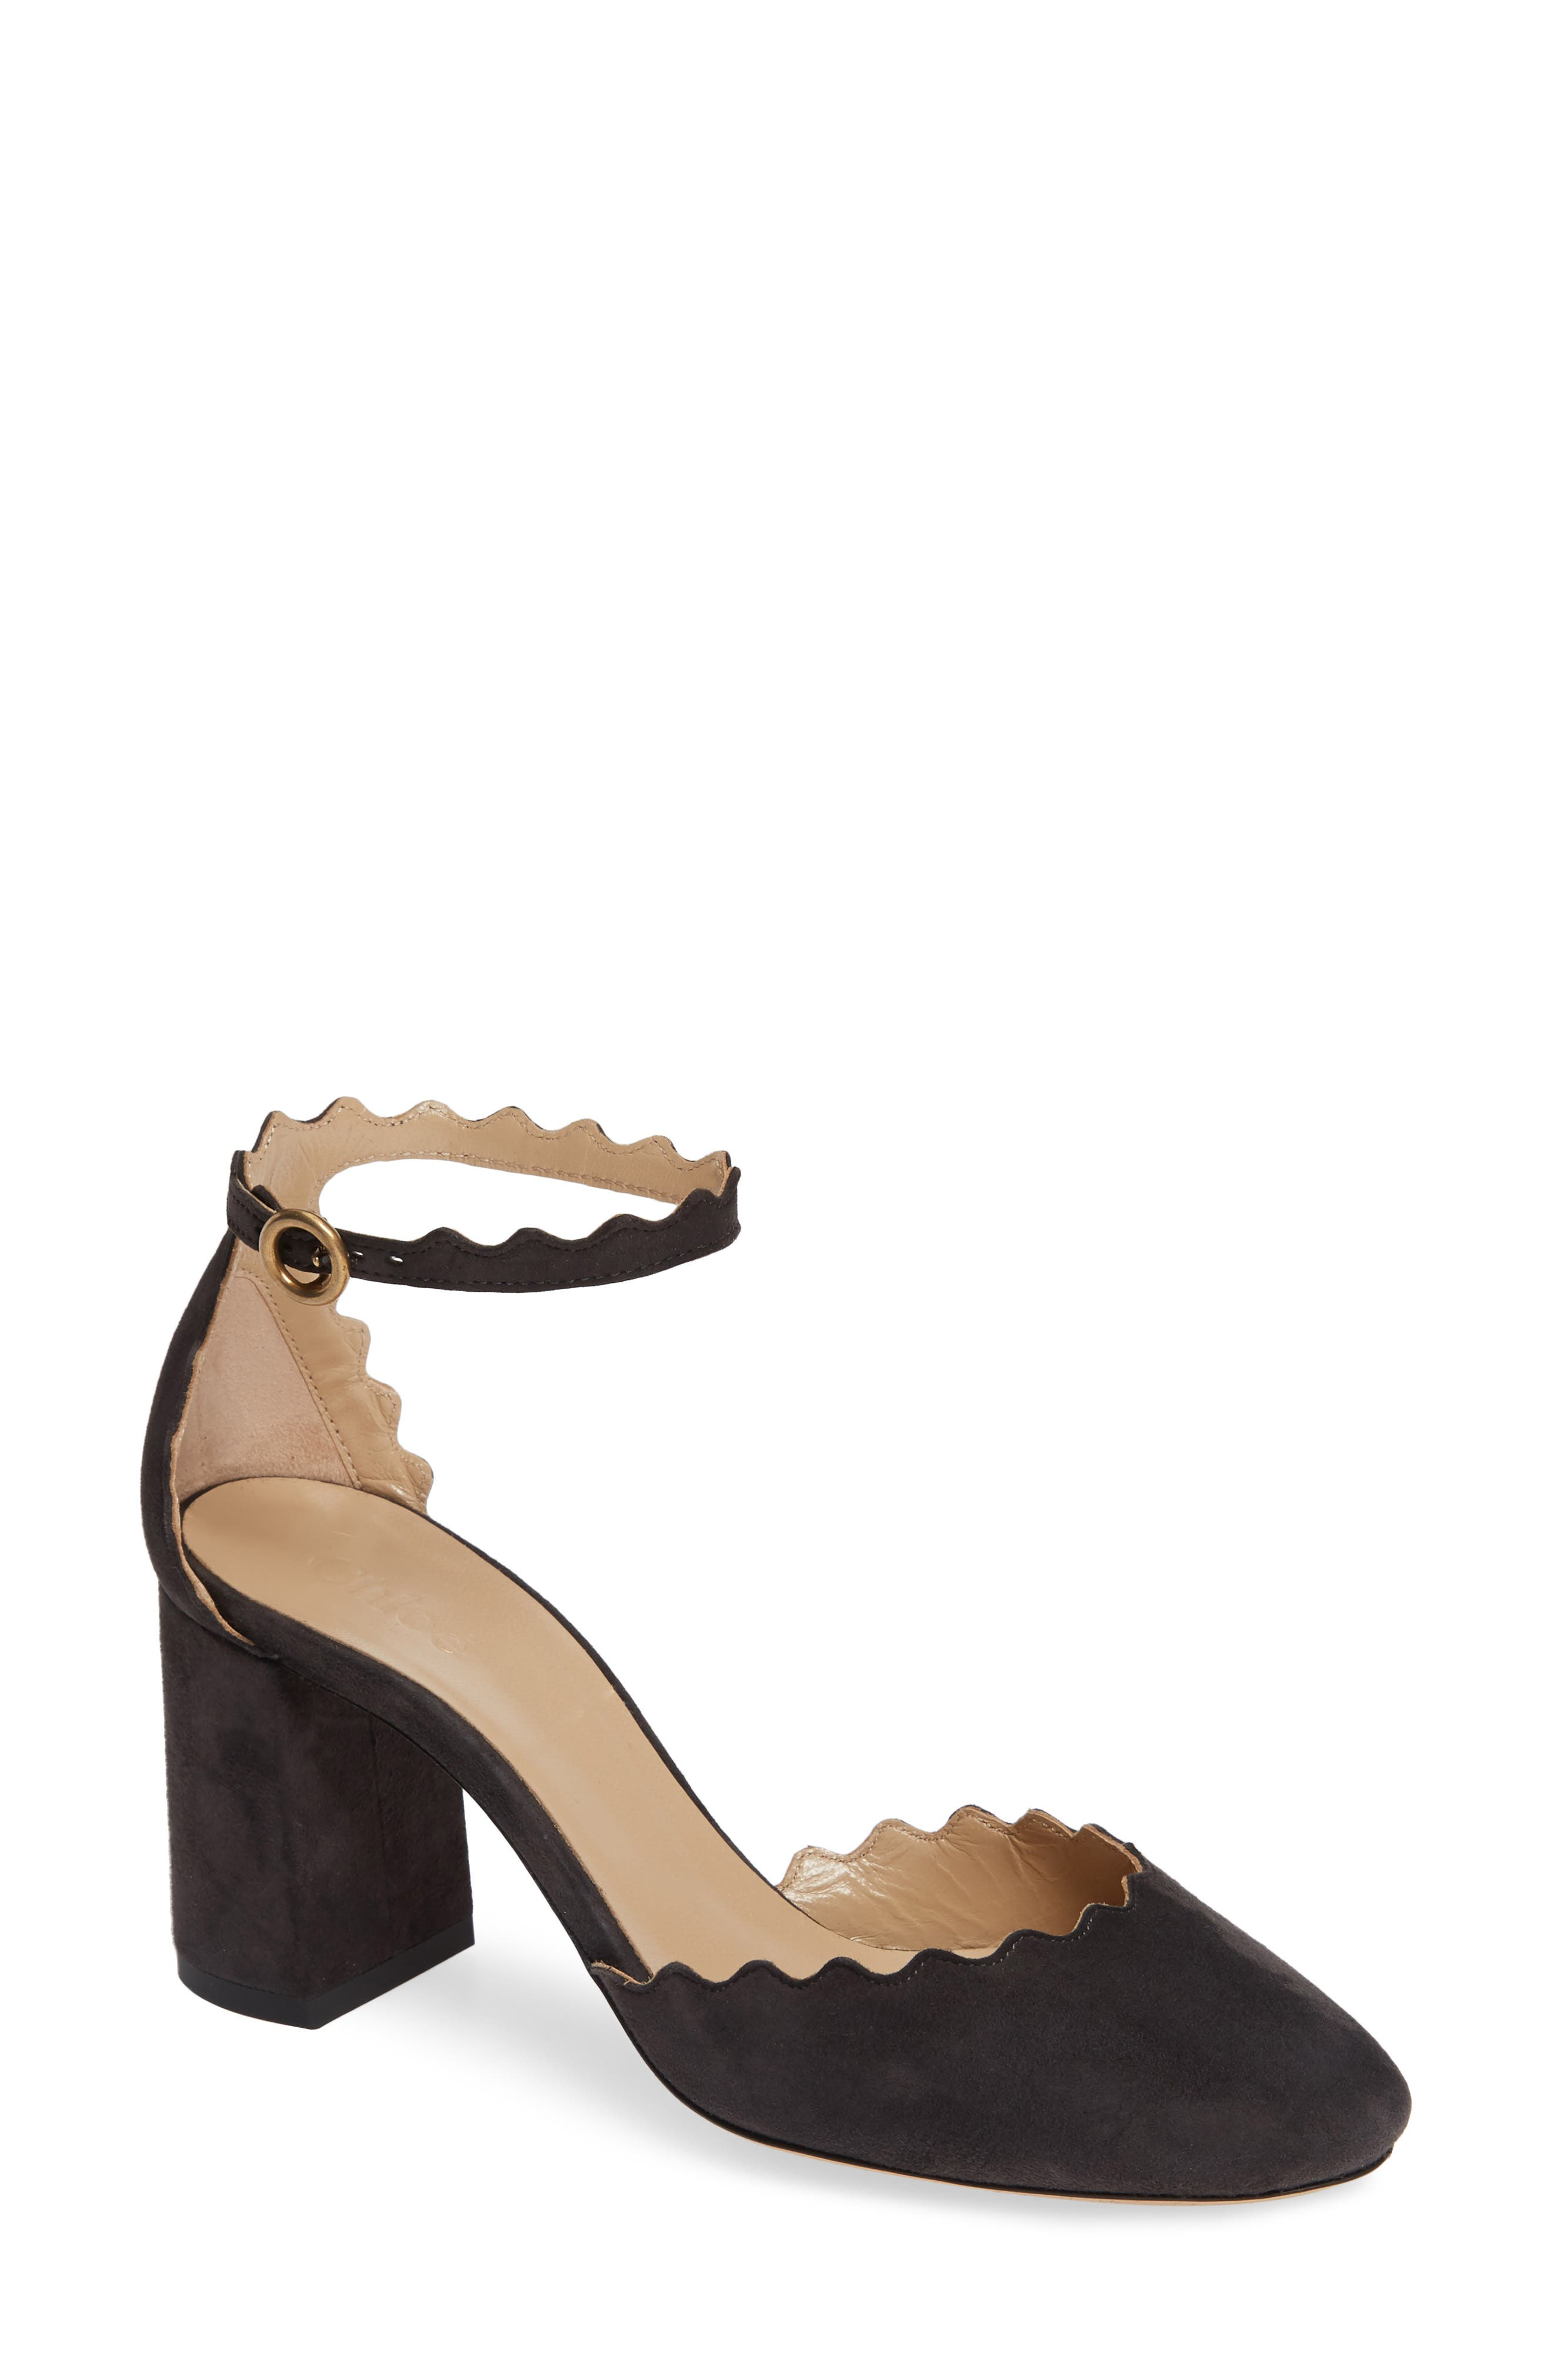 Scalloped Ankle Strap d'Orsay Pump,                         Main,                         color, 010